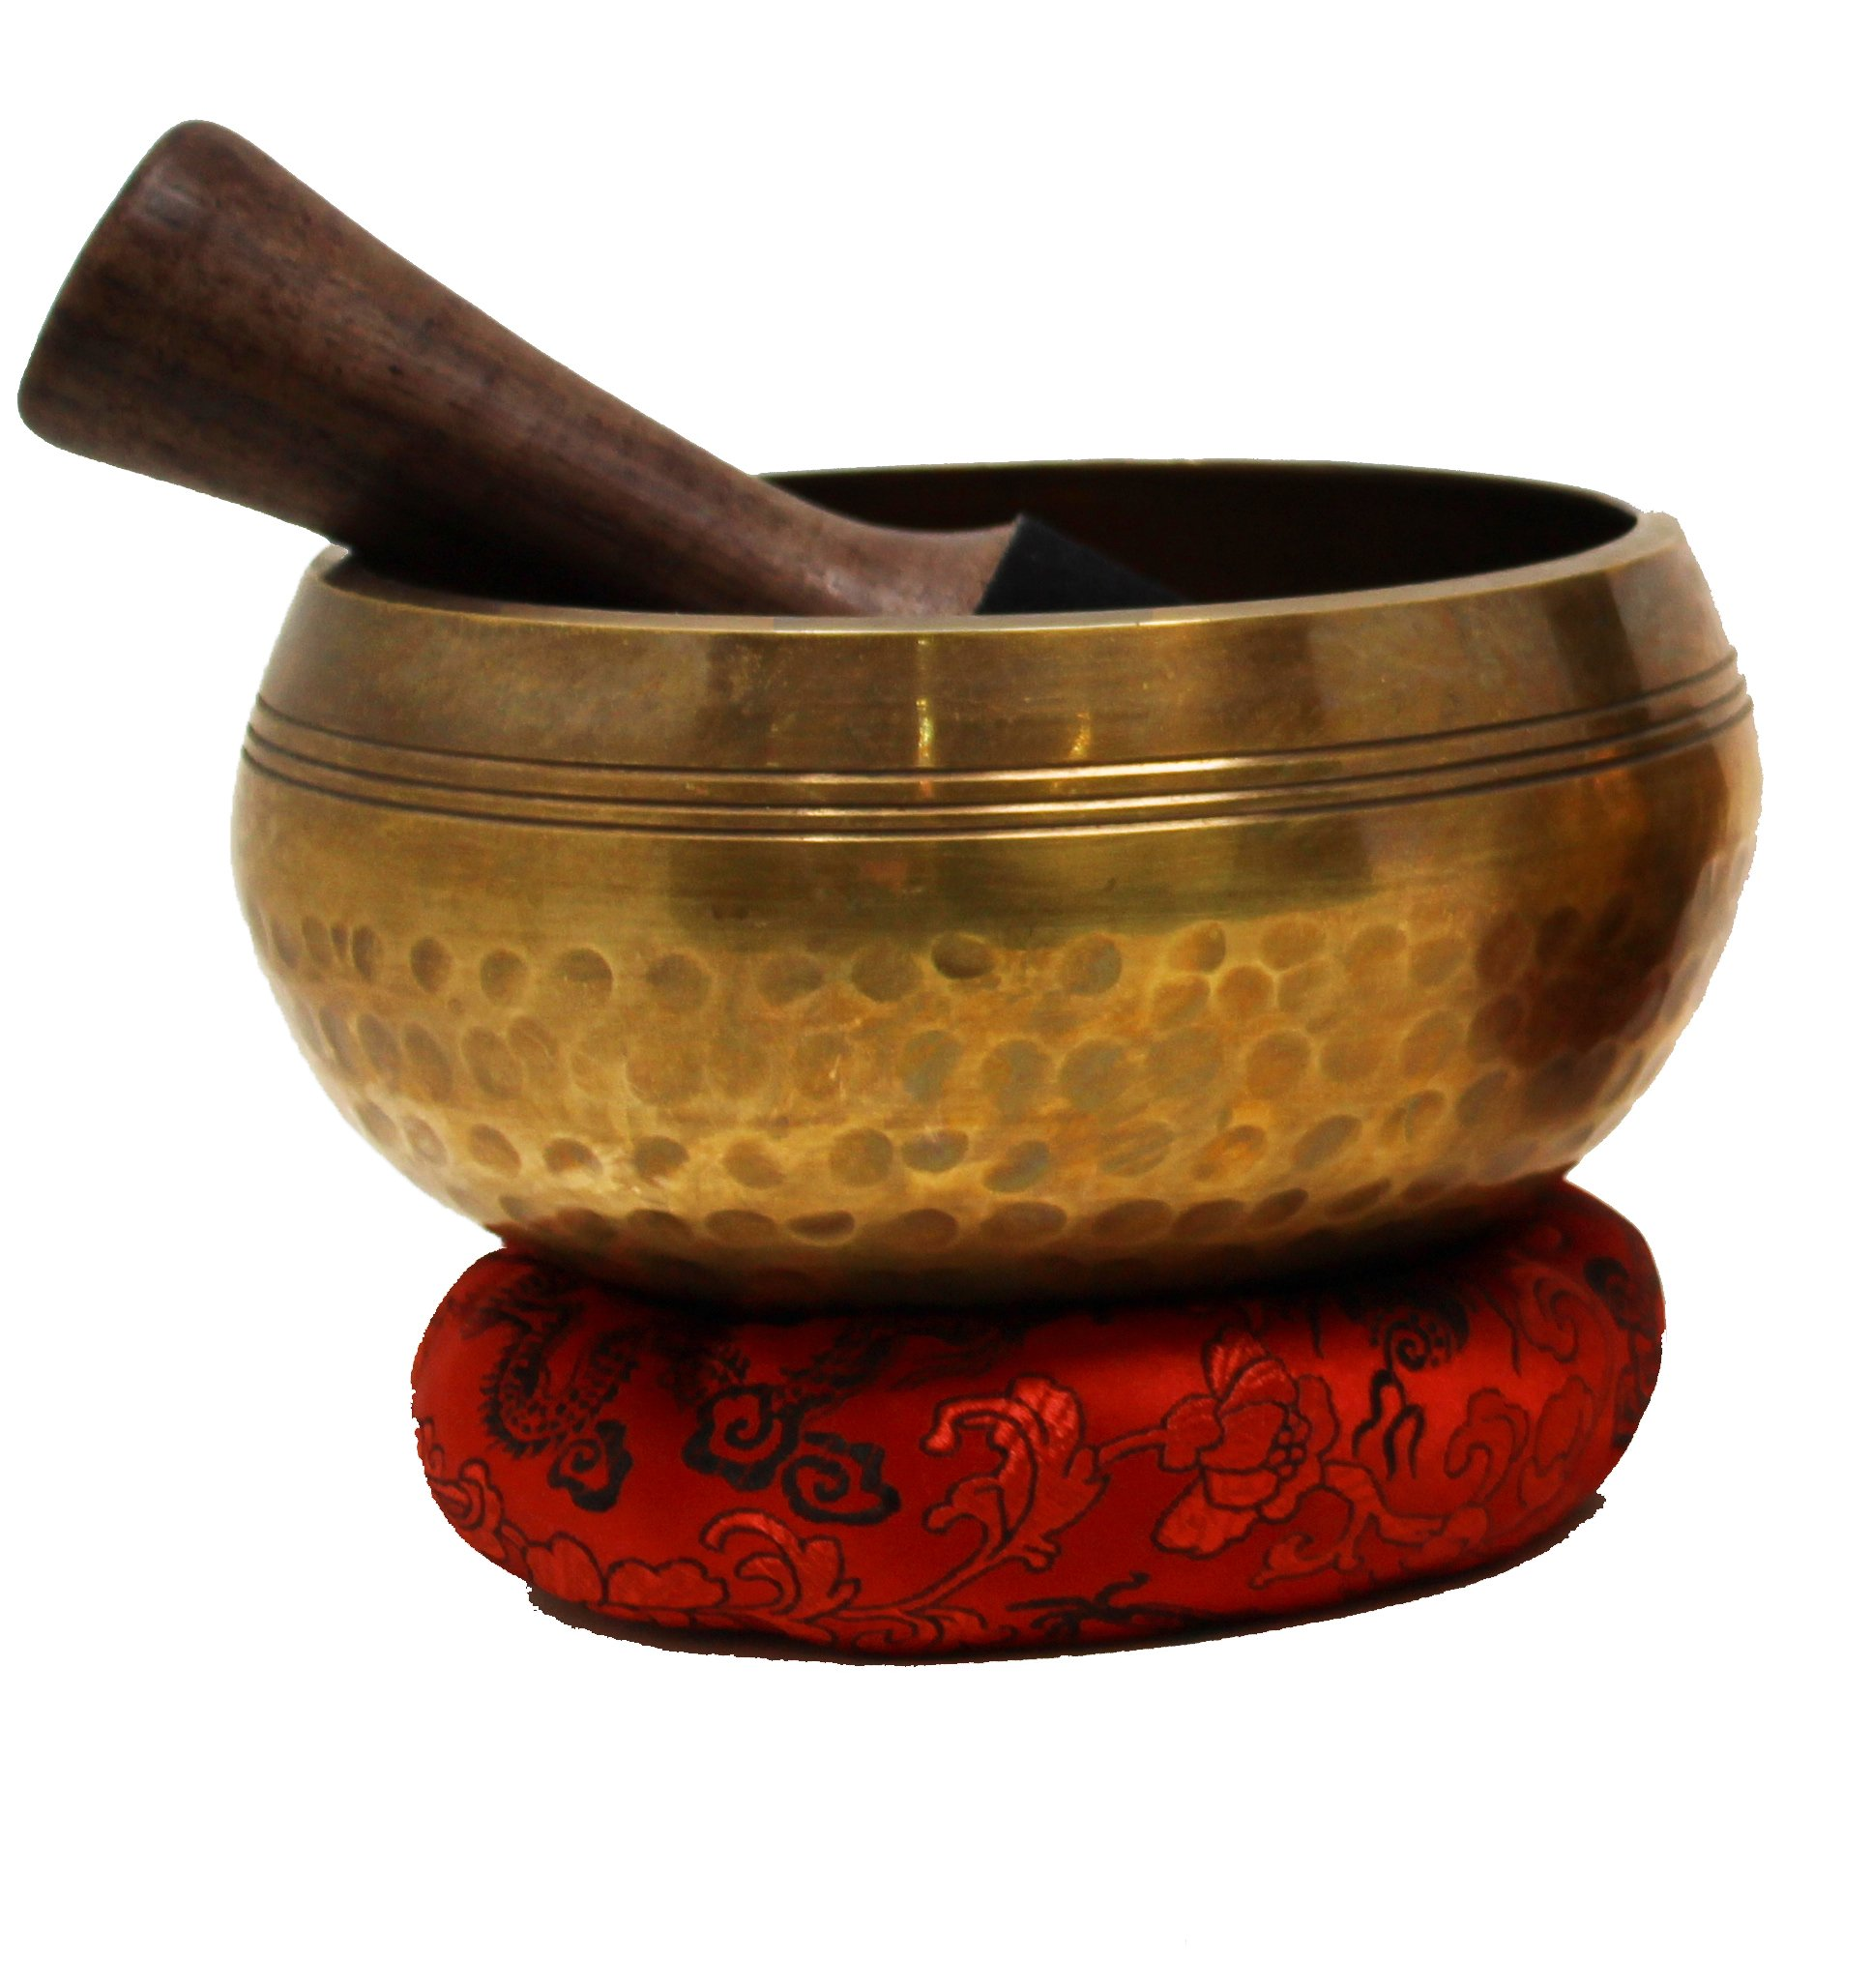 Hand Hammered Tibetan Singing Bowl Set with Deep Resonating Sound ~ For Mindfulness Meditation, Relaxation, Stress & Anxiety Relief & Yoga~ With Mallet, Cushion & Instruction (Large - 6 inch) by Juccini